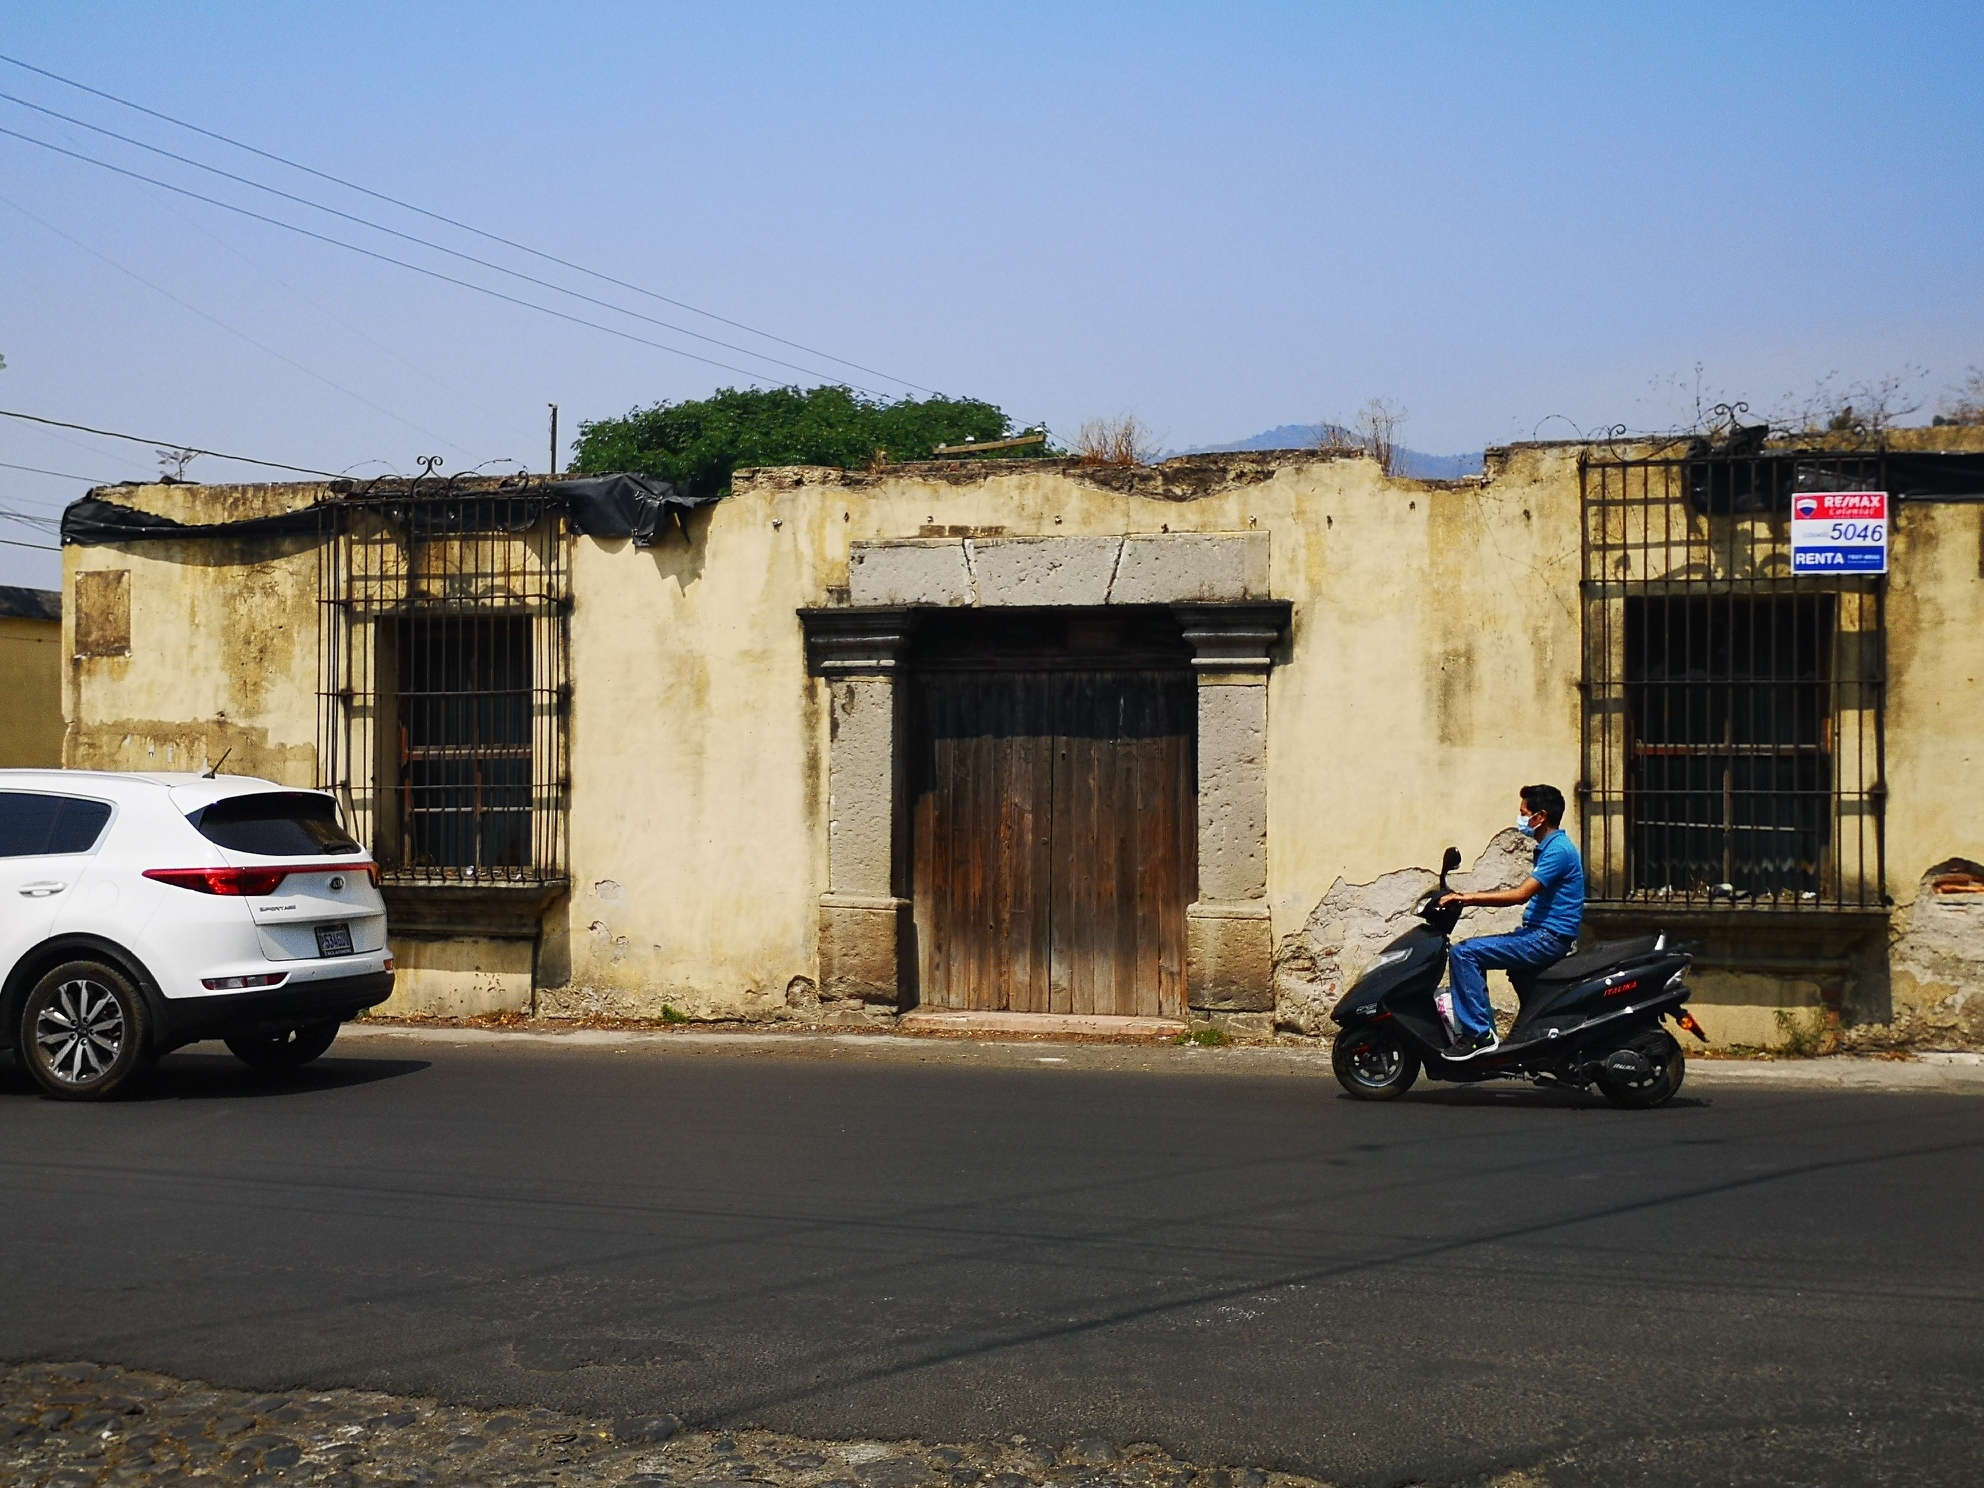 5046 COMMERCIAL PROPERTY FOR RENT IN ANTIGUA GUATEMALA